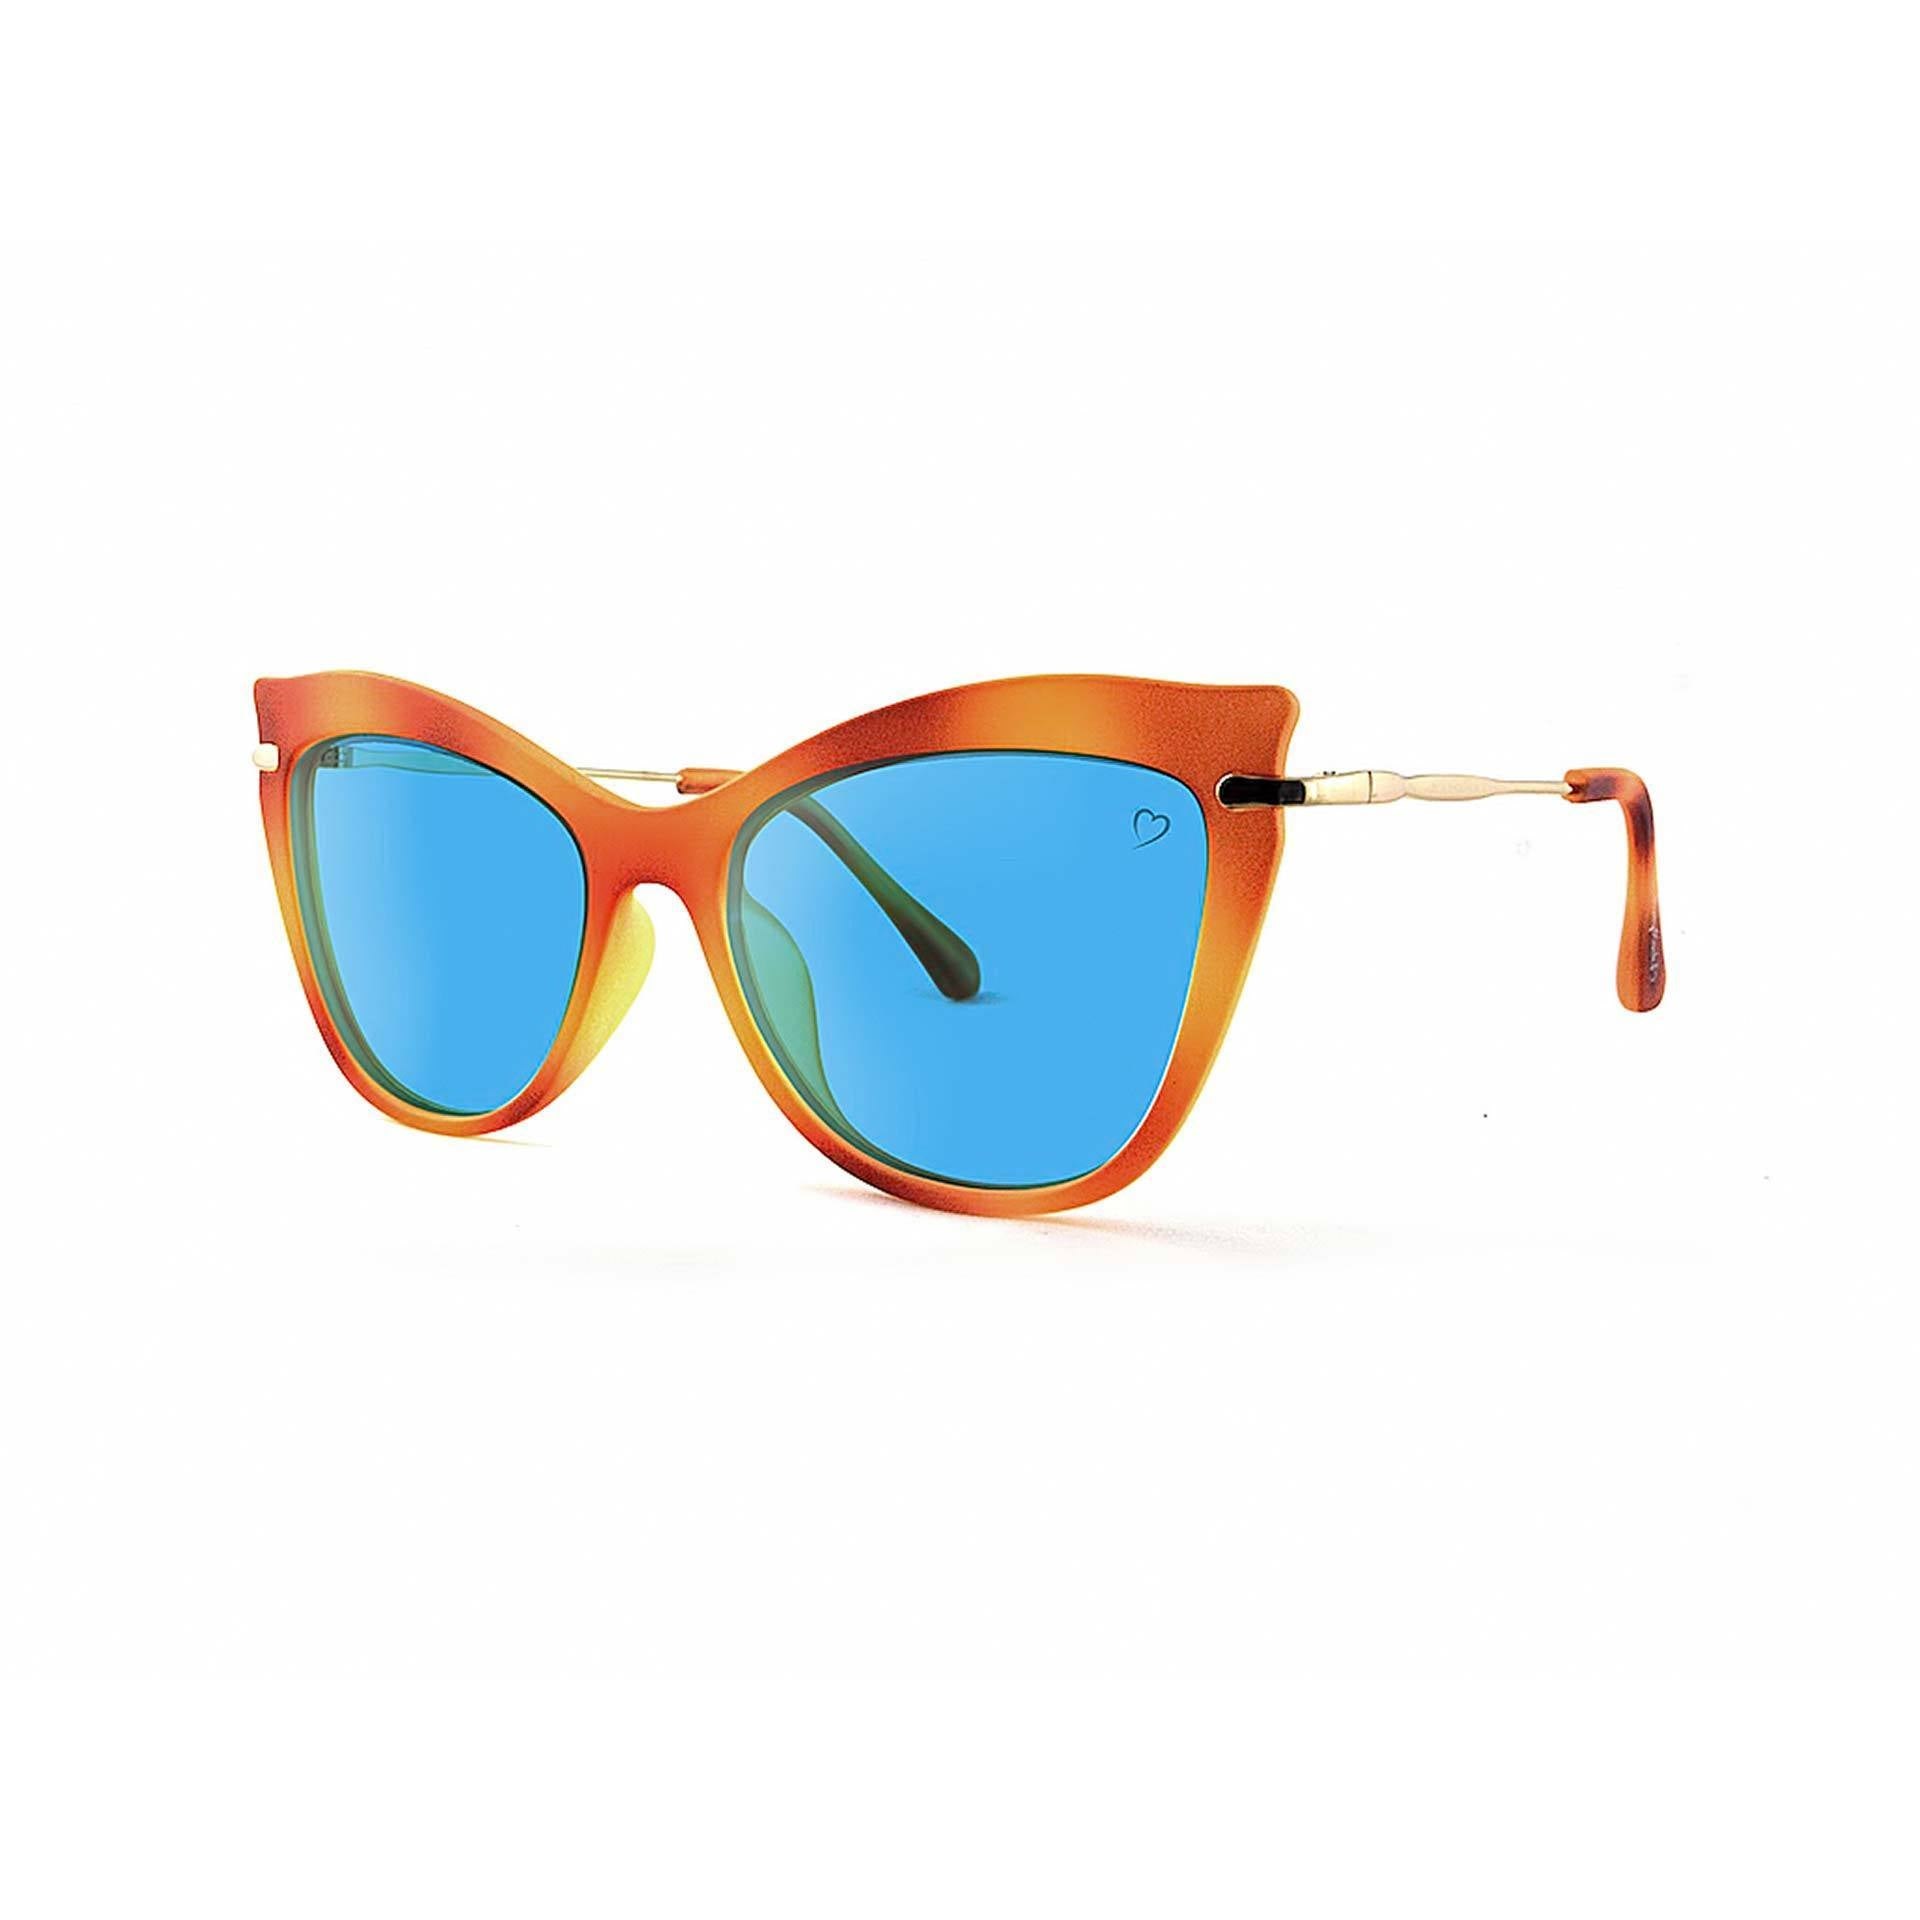 Faceted 'Ischia' Cateye With Metal Temples